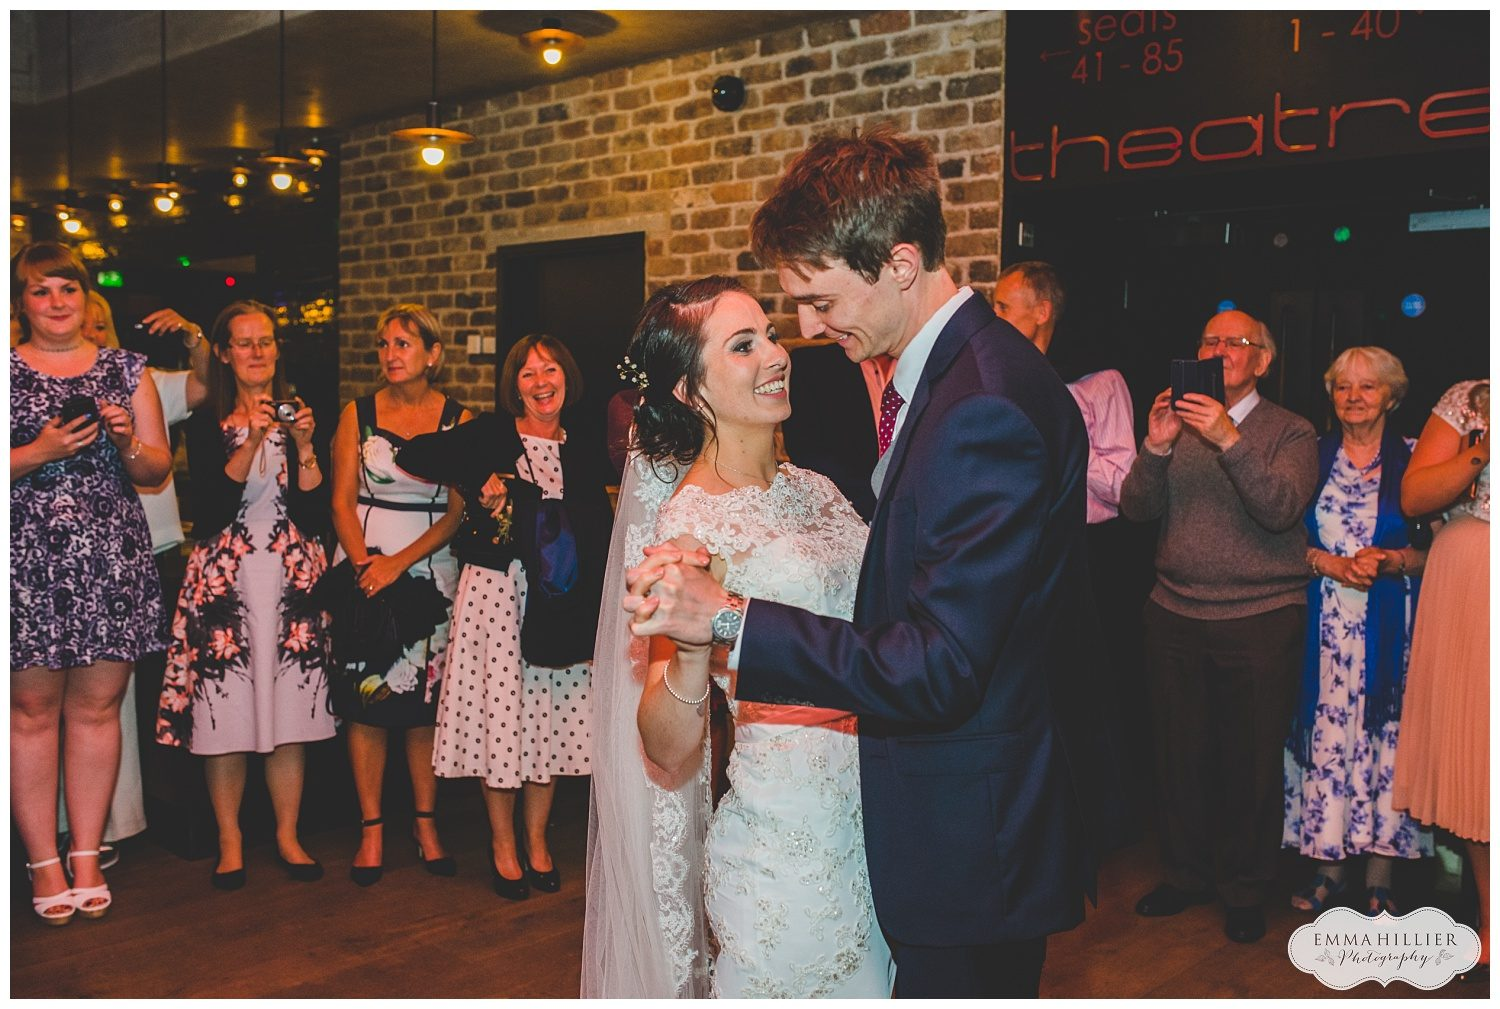 First dance at Everyman Theatre wedding in Liverpool